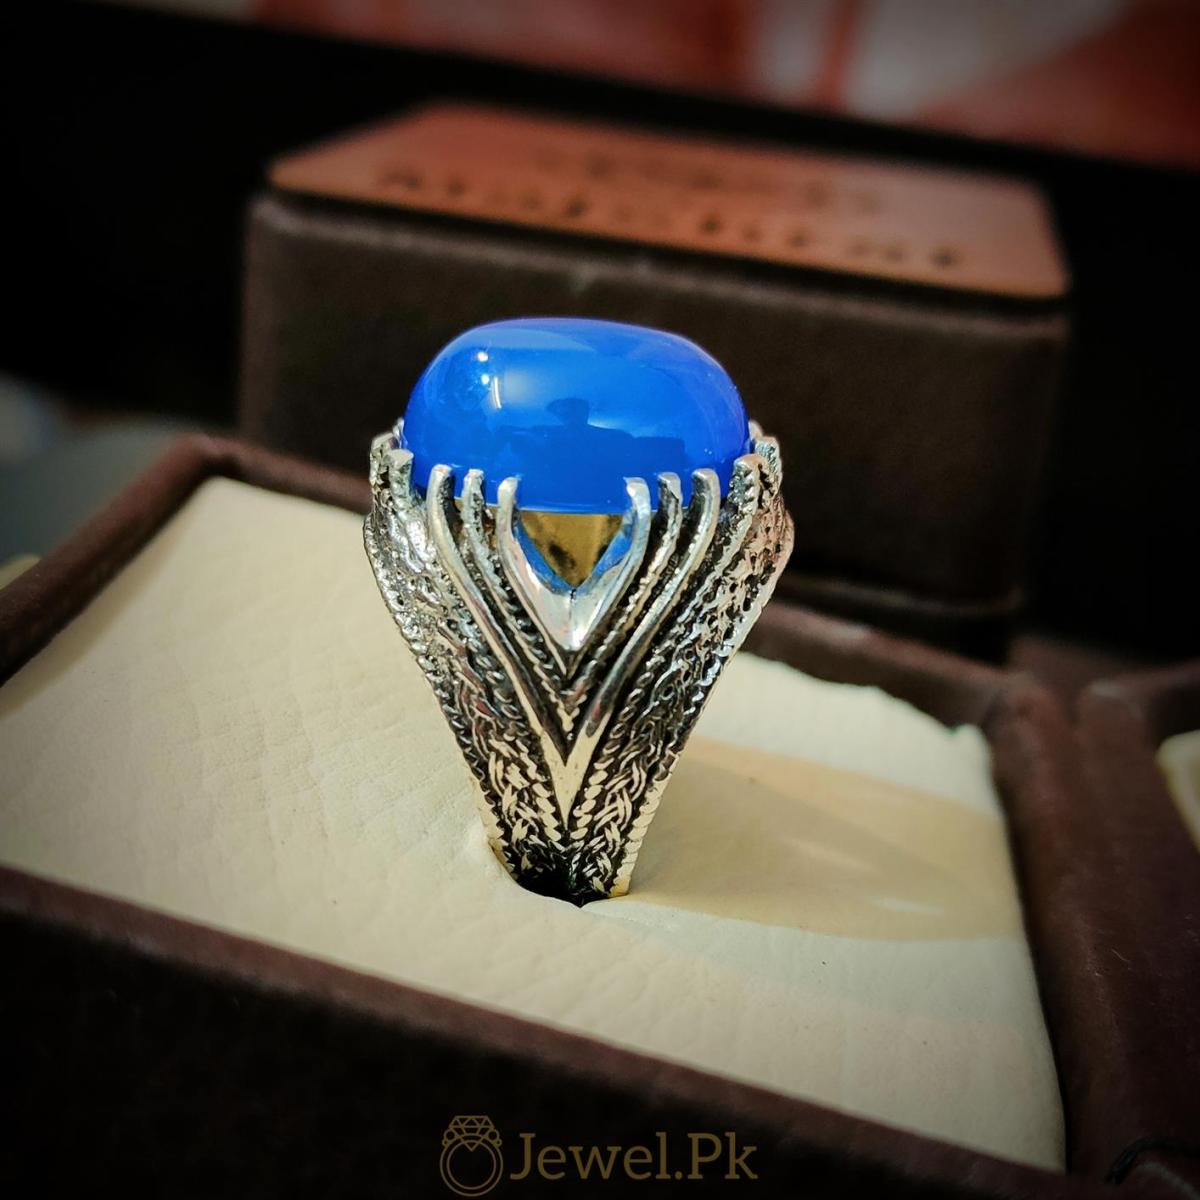 Rare Blue Aqeeq Ring Beautiful and Luxury Turkish Ring 4 natural gemstones pakistan + 925 silver jewelry online